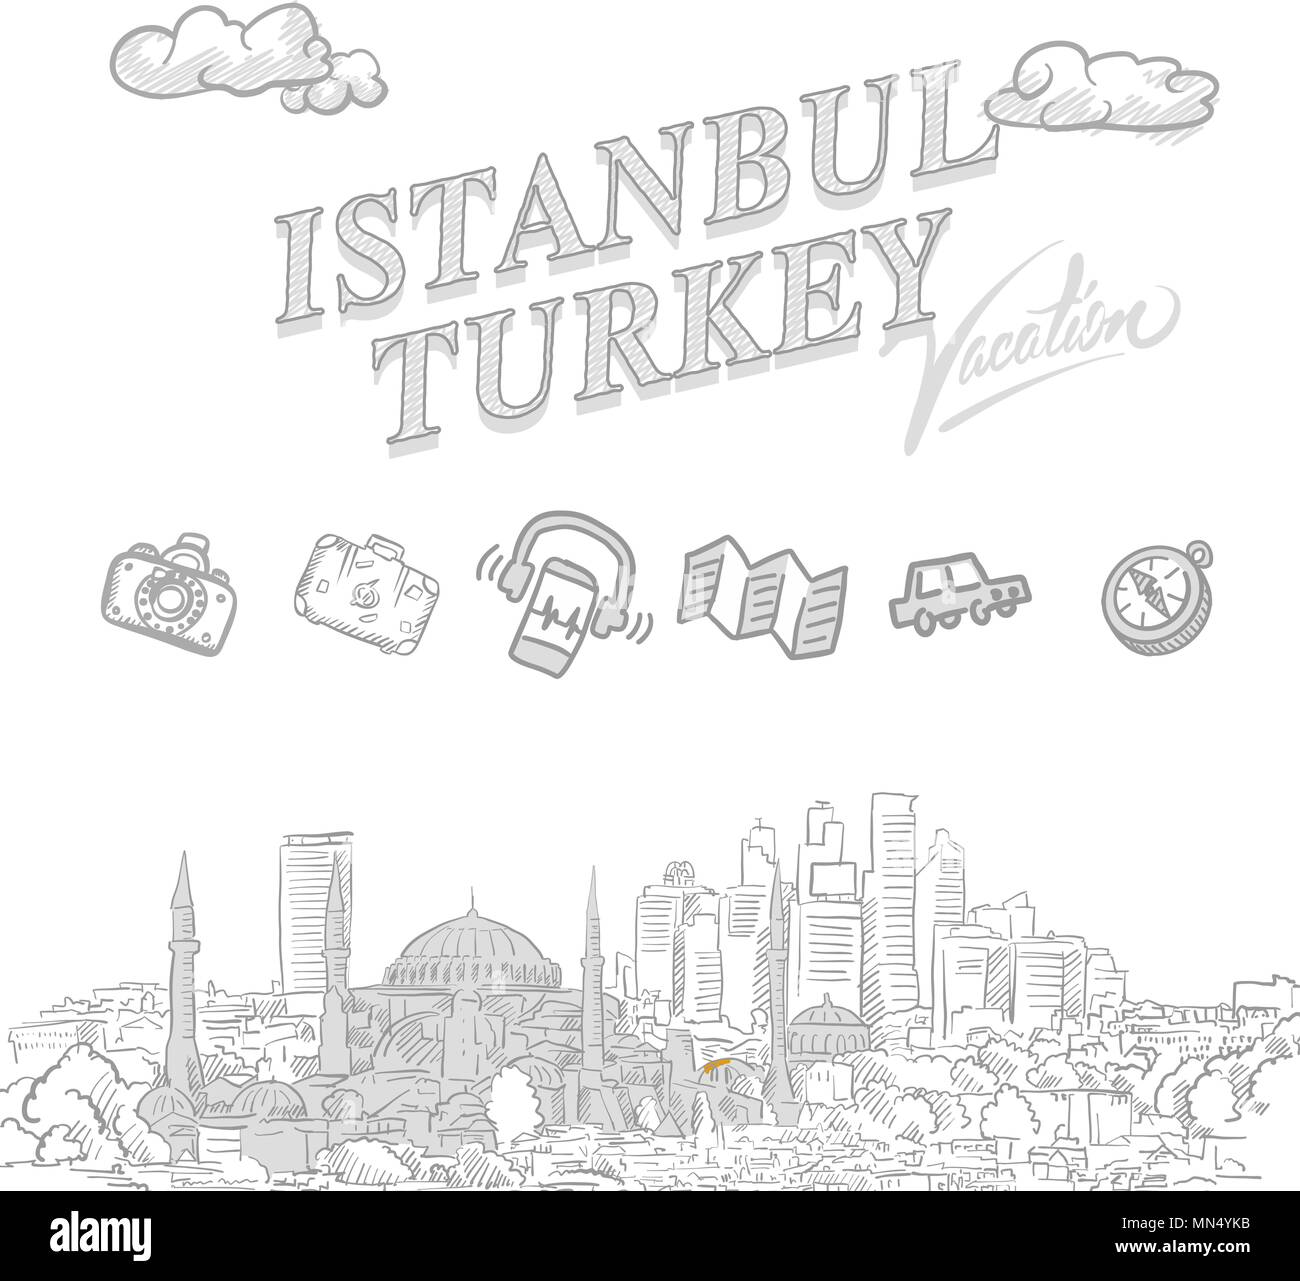 Istanbul travel marketing cover, set of hand drawn a vector sketches - Stock Image